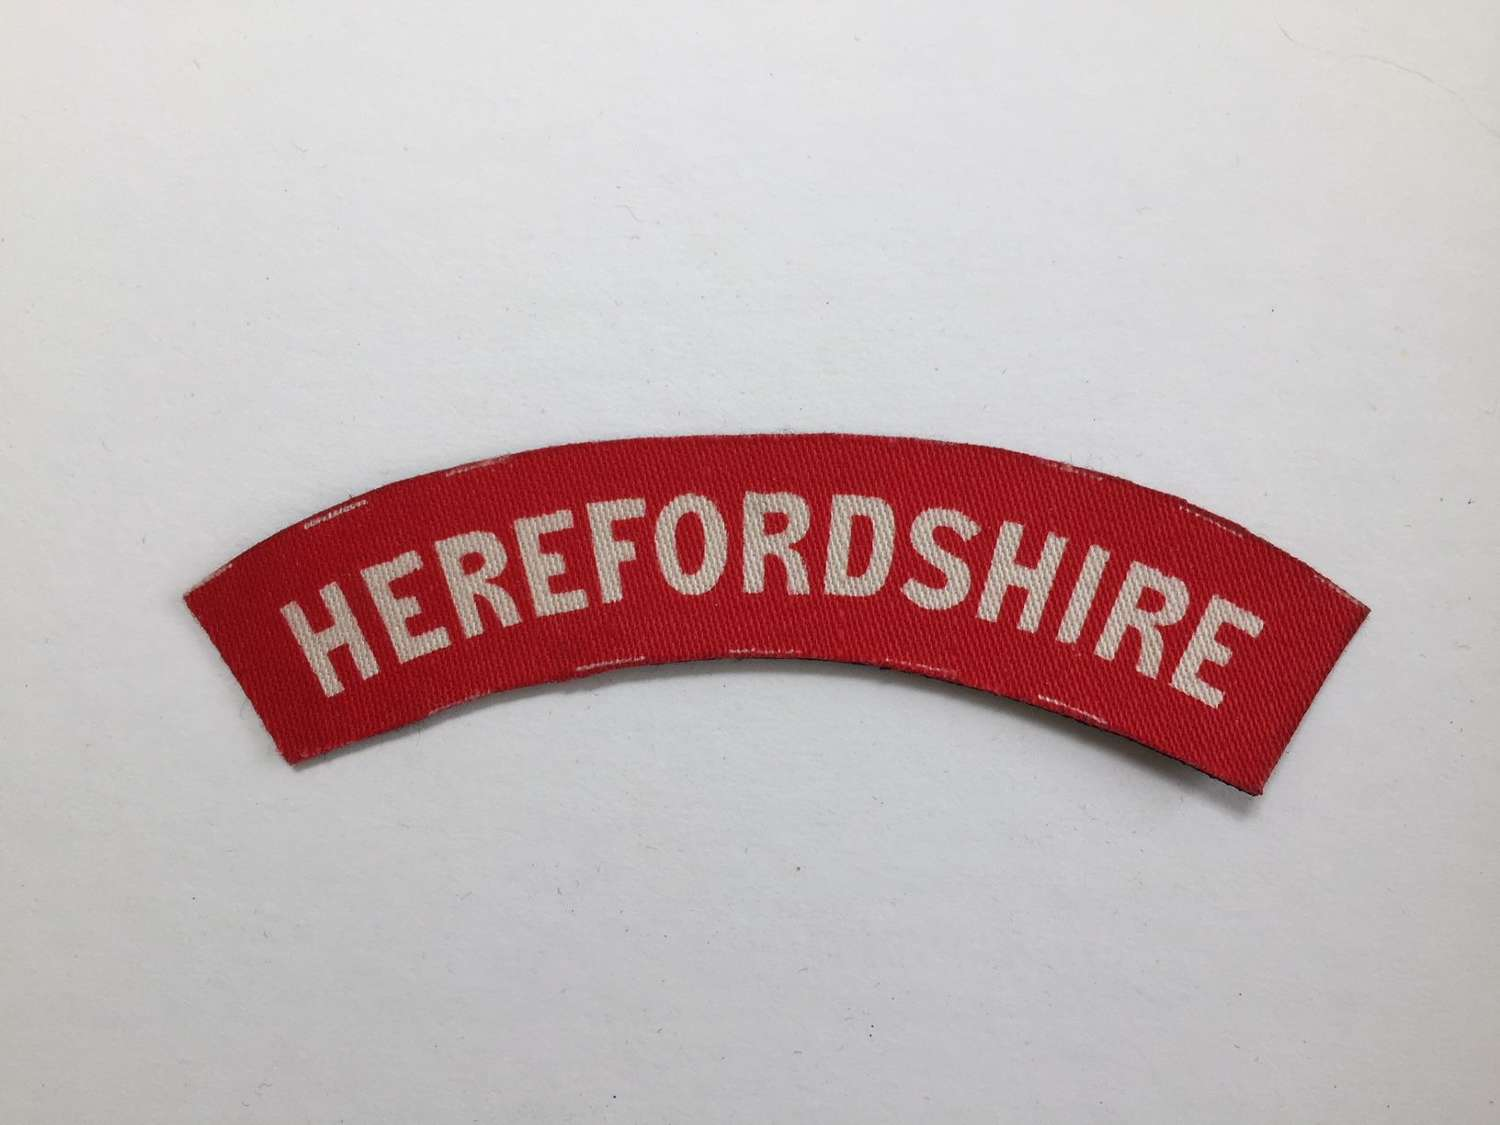 WW2 printed Herefordshire shoulder title